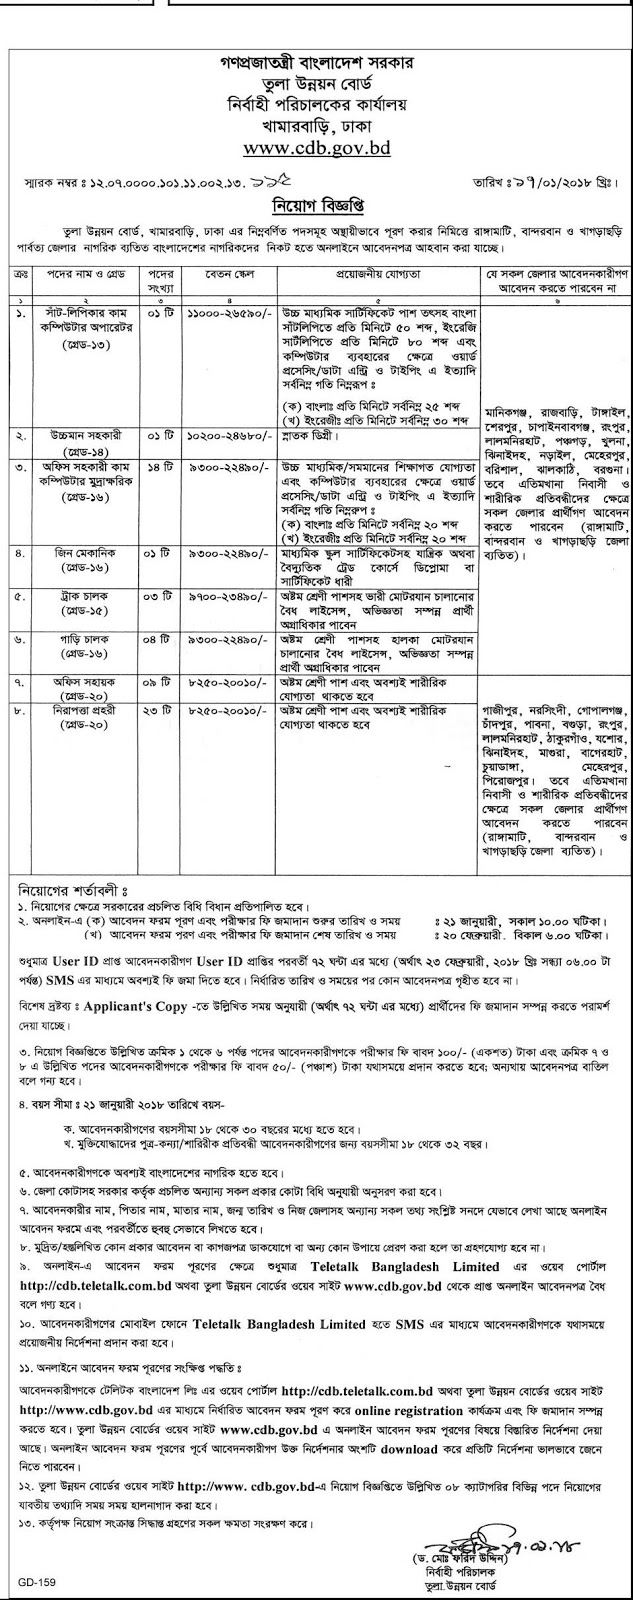 CDB - Cotton Development Board Limited Job Circular 2018